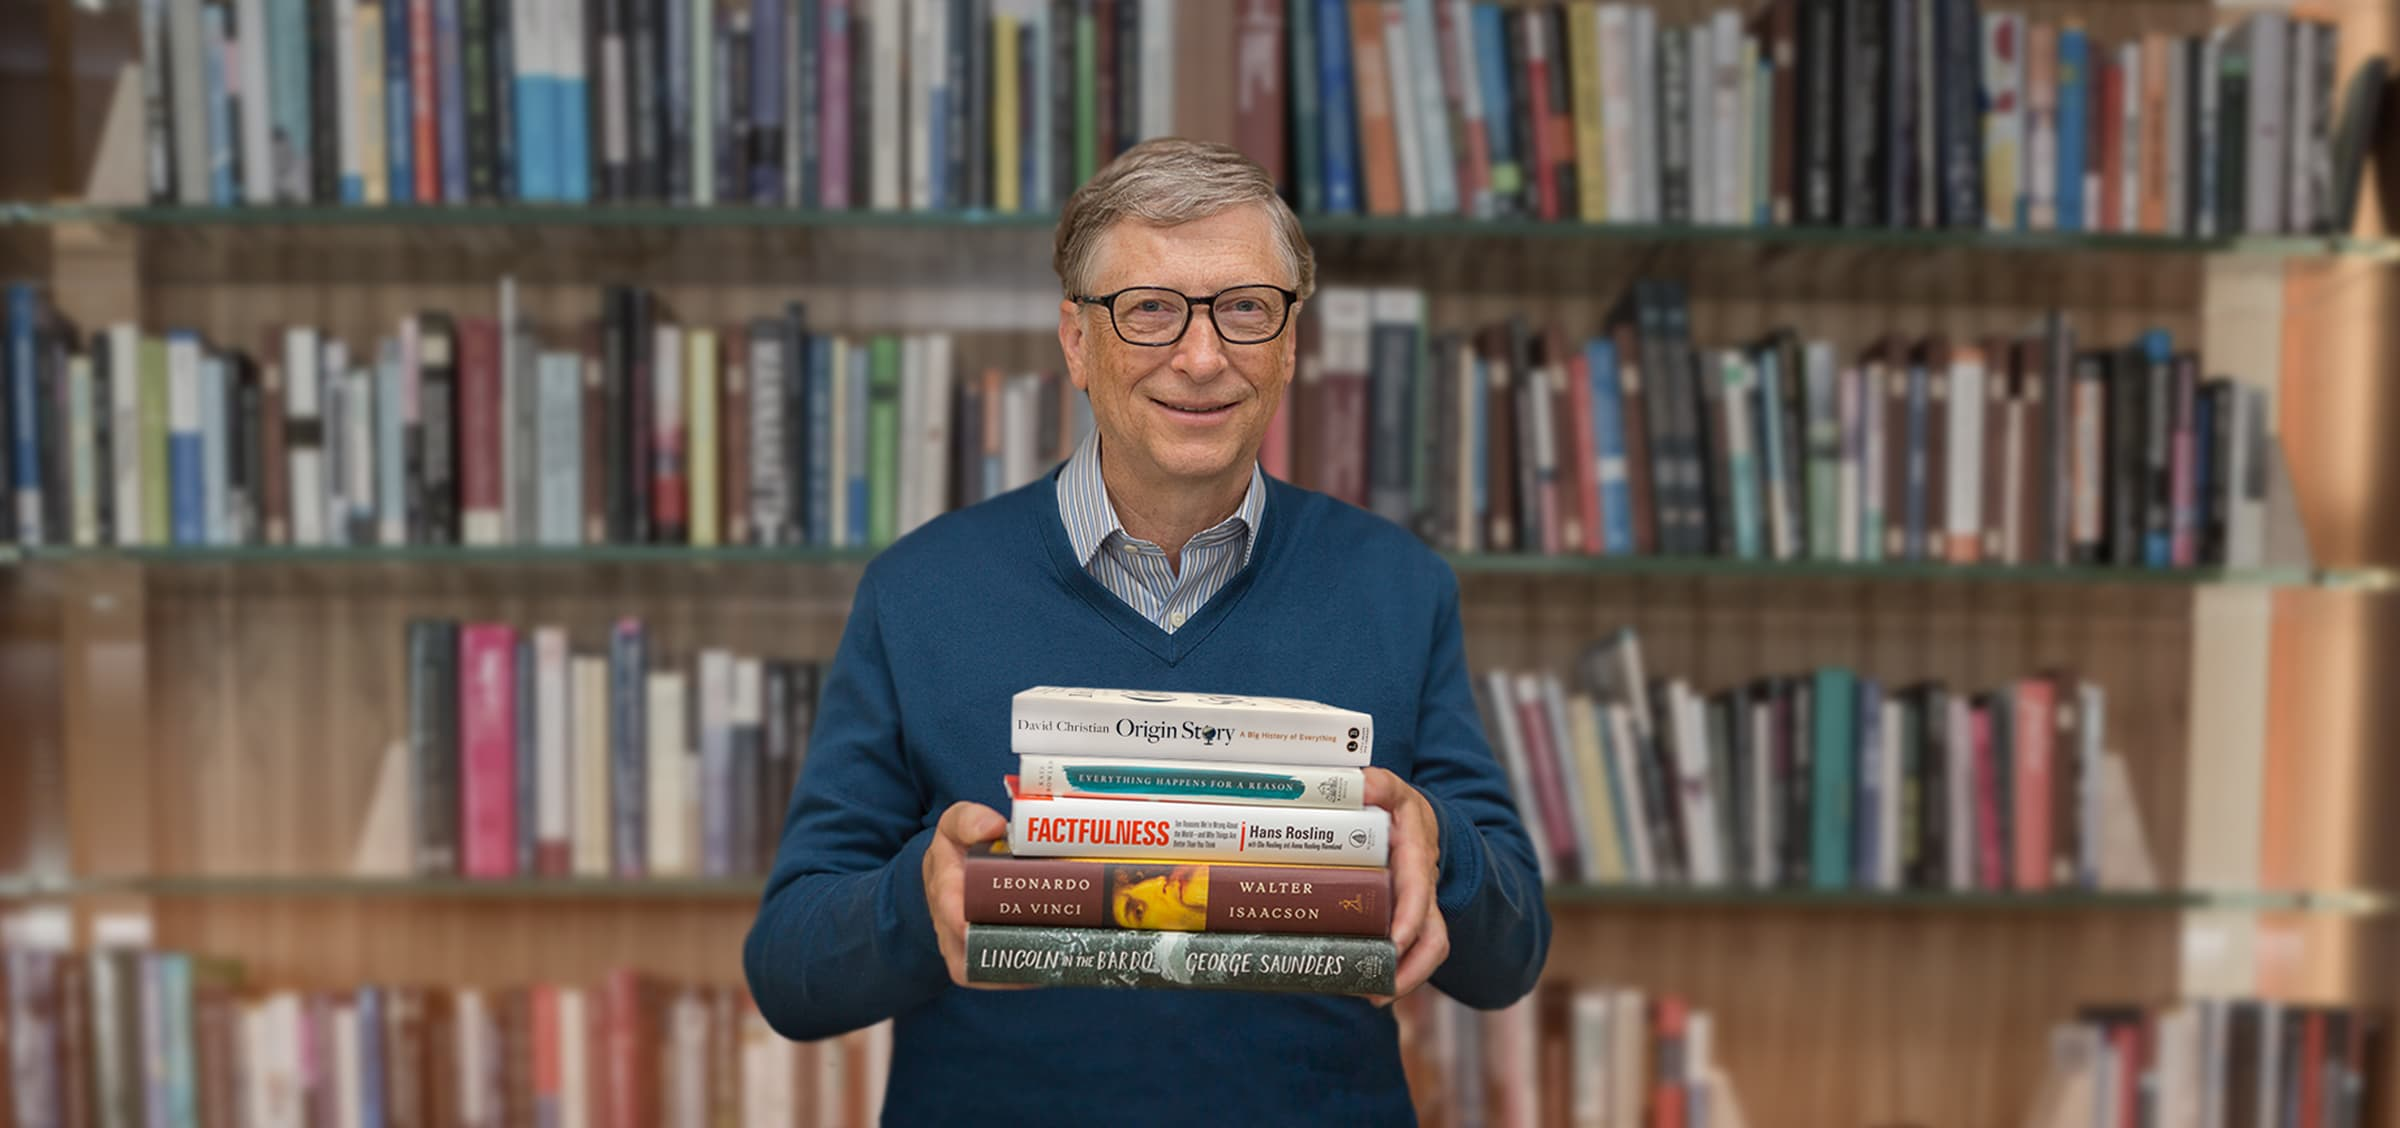 I read the 8 best business books of all time (so you don't have to)—here are the only lessons you need to know